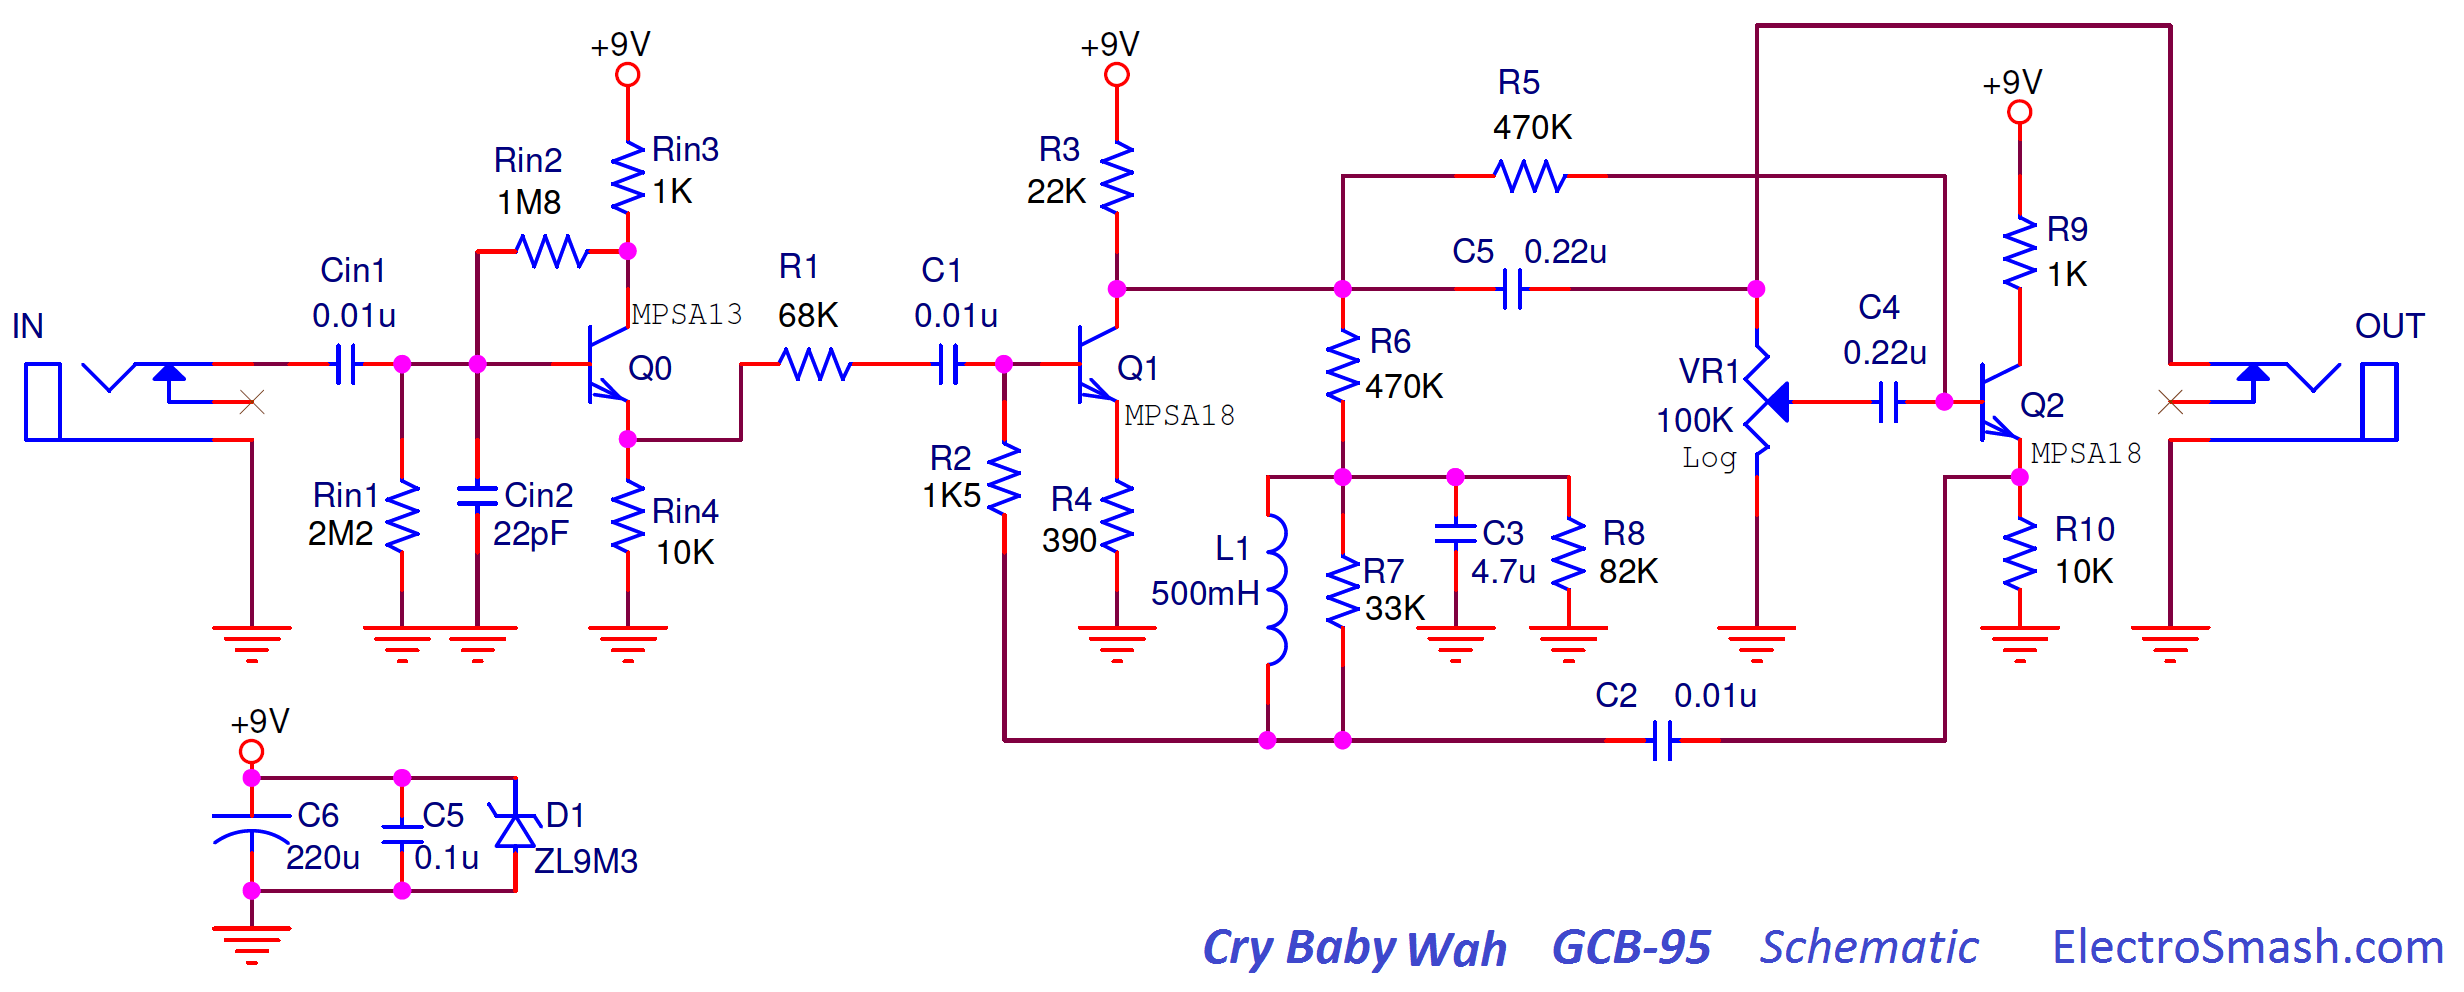 cry baby wah gcb 95 schematic electrosmash dunlop crybaby gcb 95 cicuit analysis crybaby gcb-95 wiring diagram at fashall.co